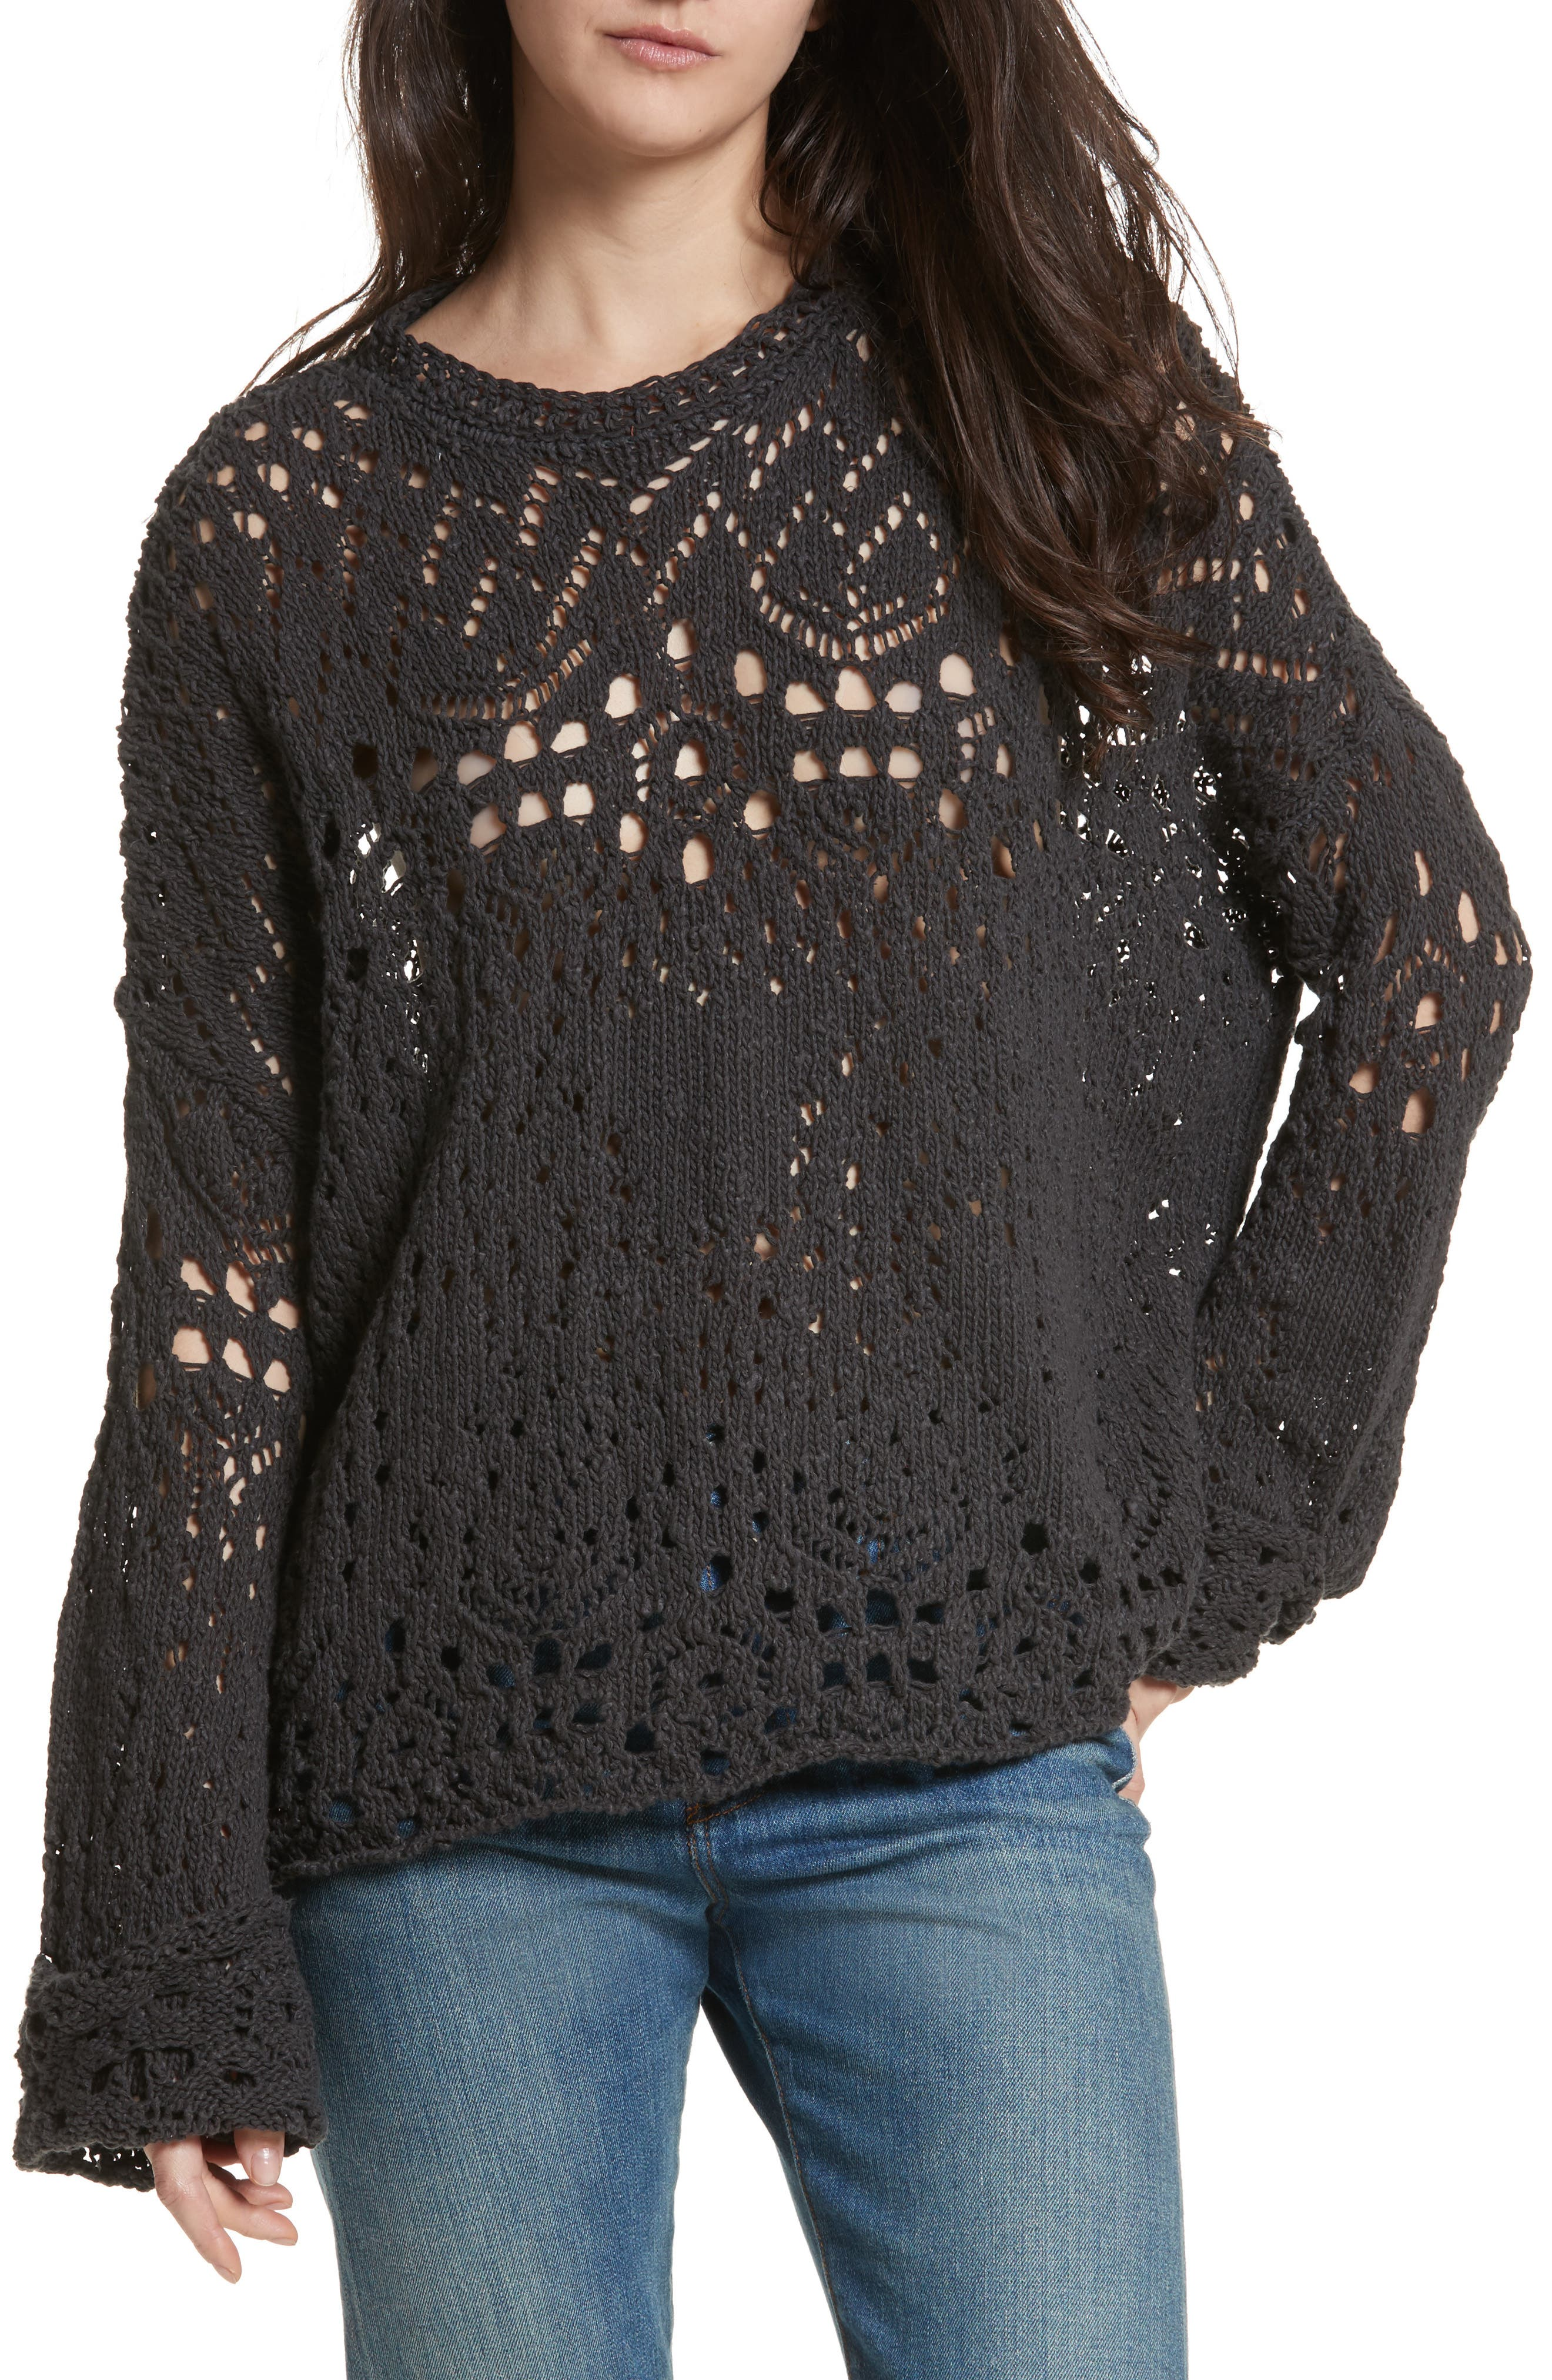 Traveling Lace Sweater,                             Main thumbnail 1, color,                             009